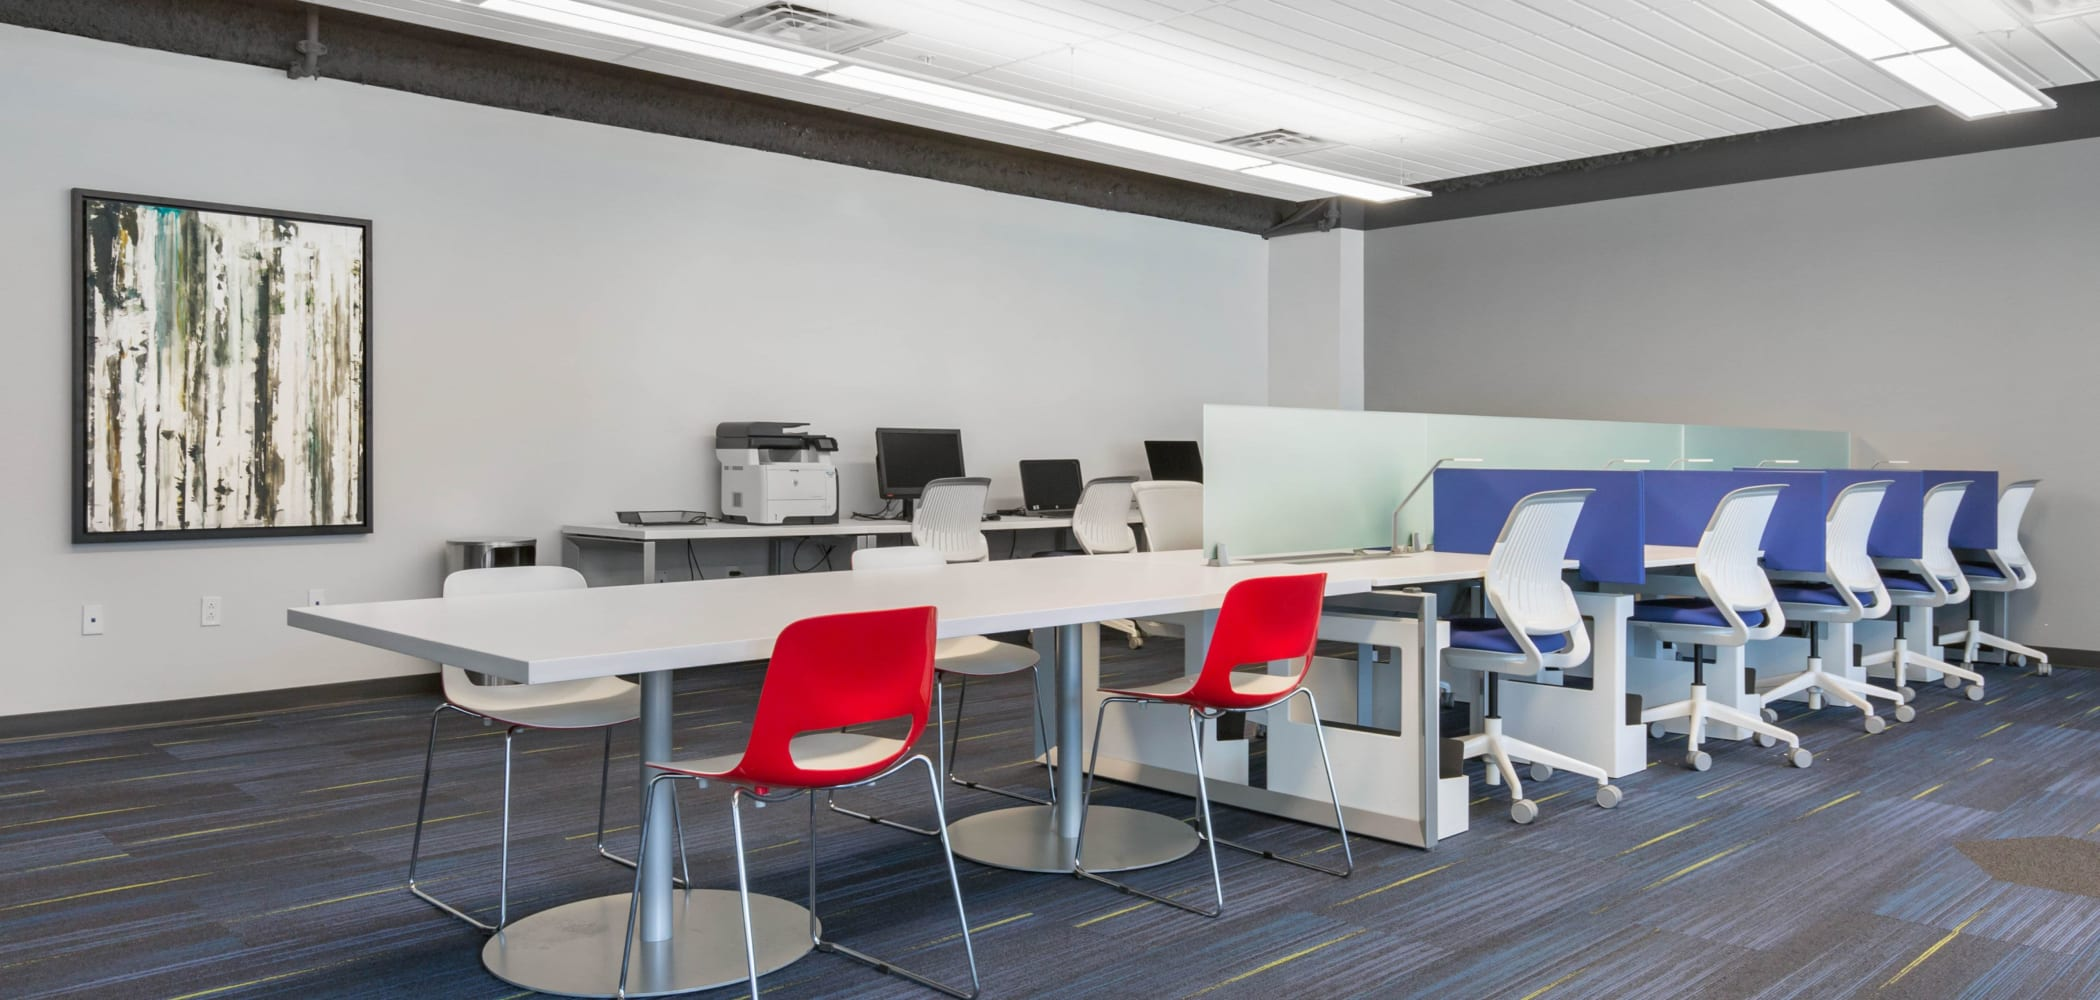 Group study room at West Quad in Champaign, Illinois